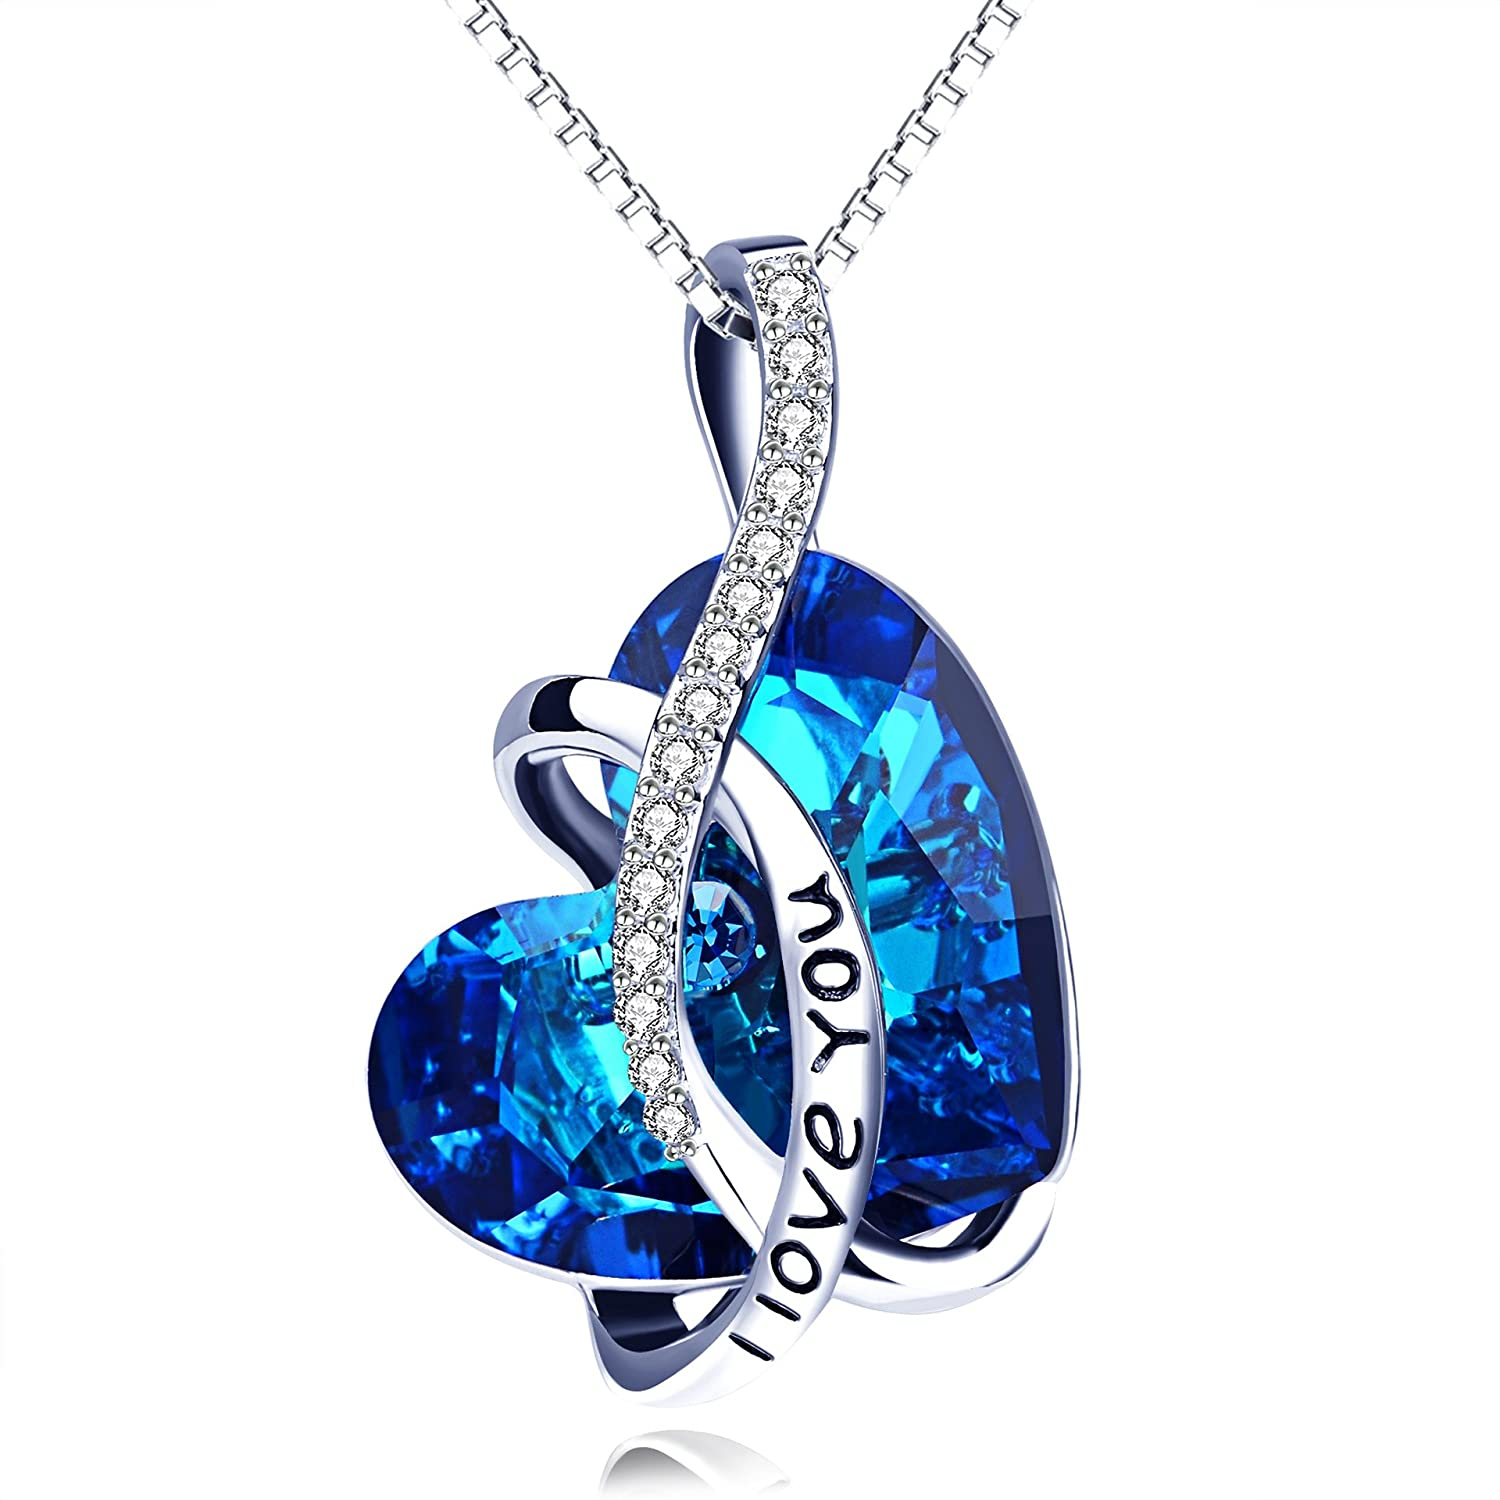 77d374688 Amazon.com: AOBOCO Jewelry I Love You Sterling Silver Heart Pendant Necklace  for Girls with Blue Crystals from Swarovski Anniversary Birthday Gift for  Women ...